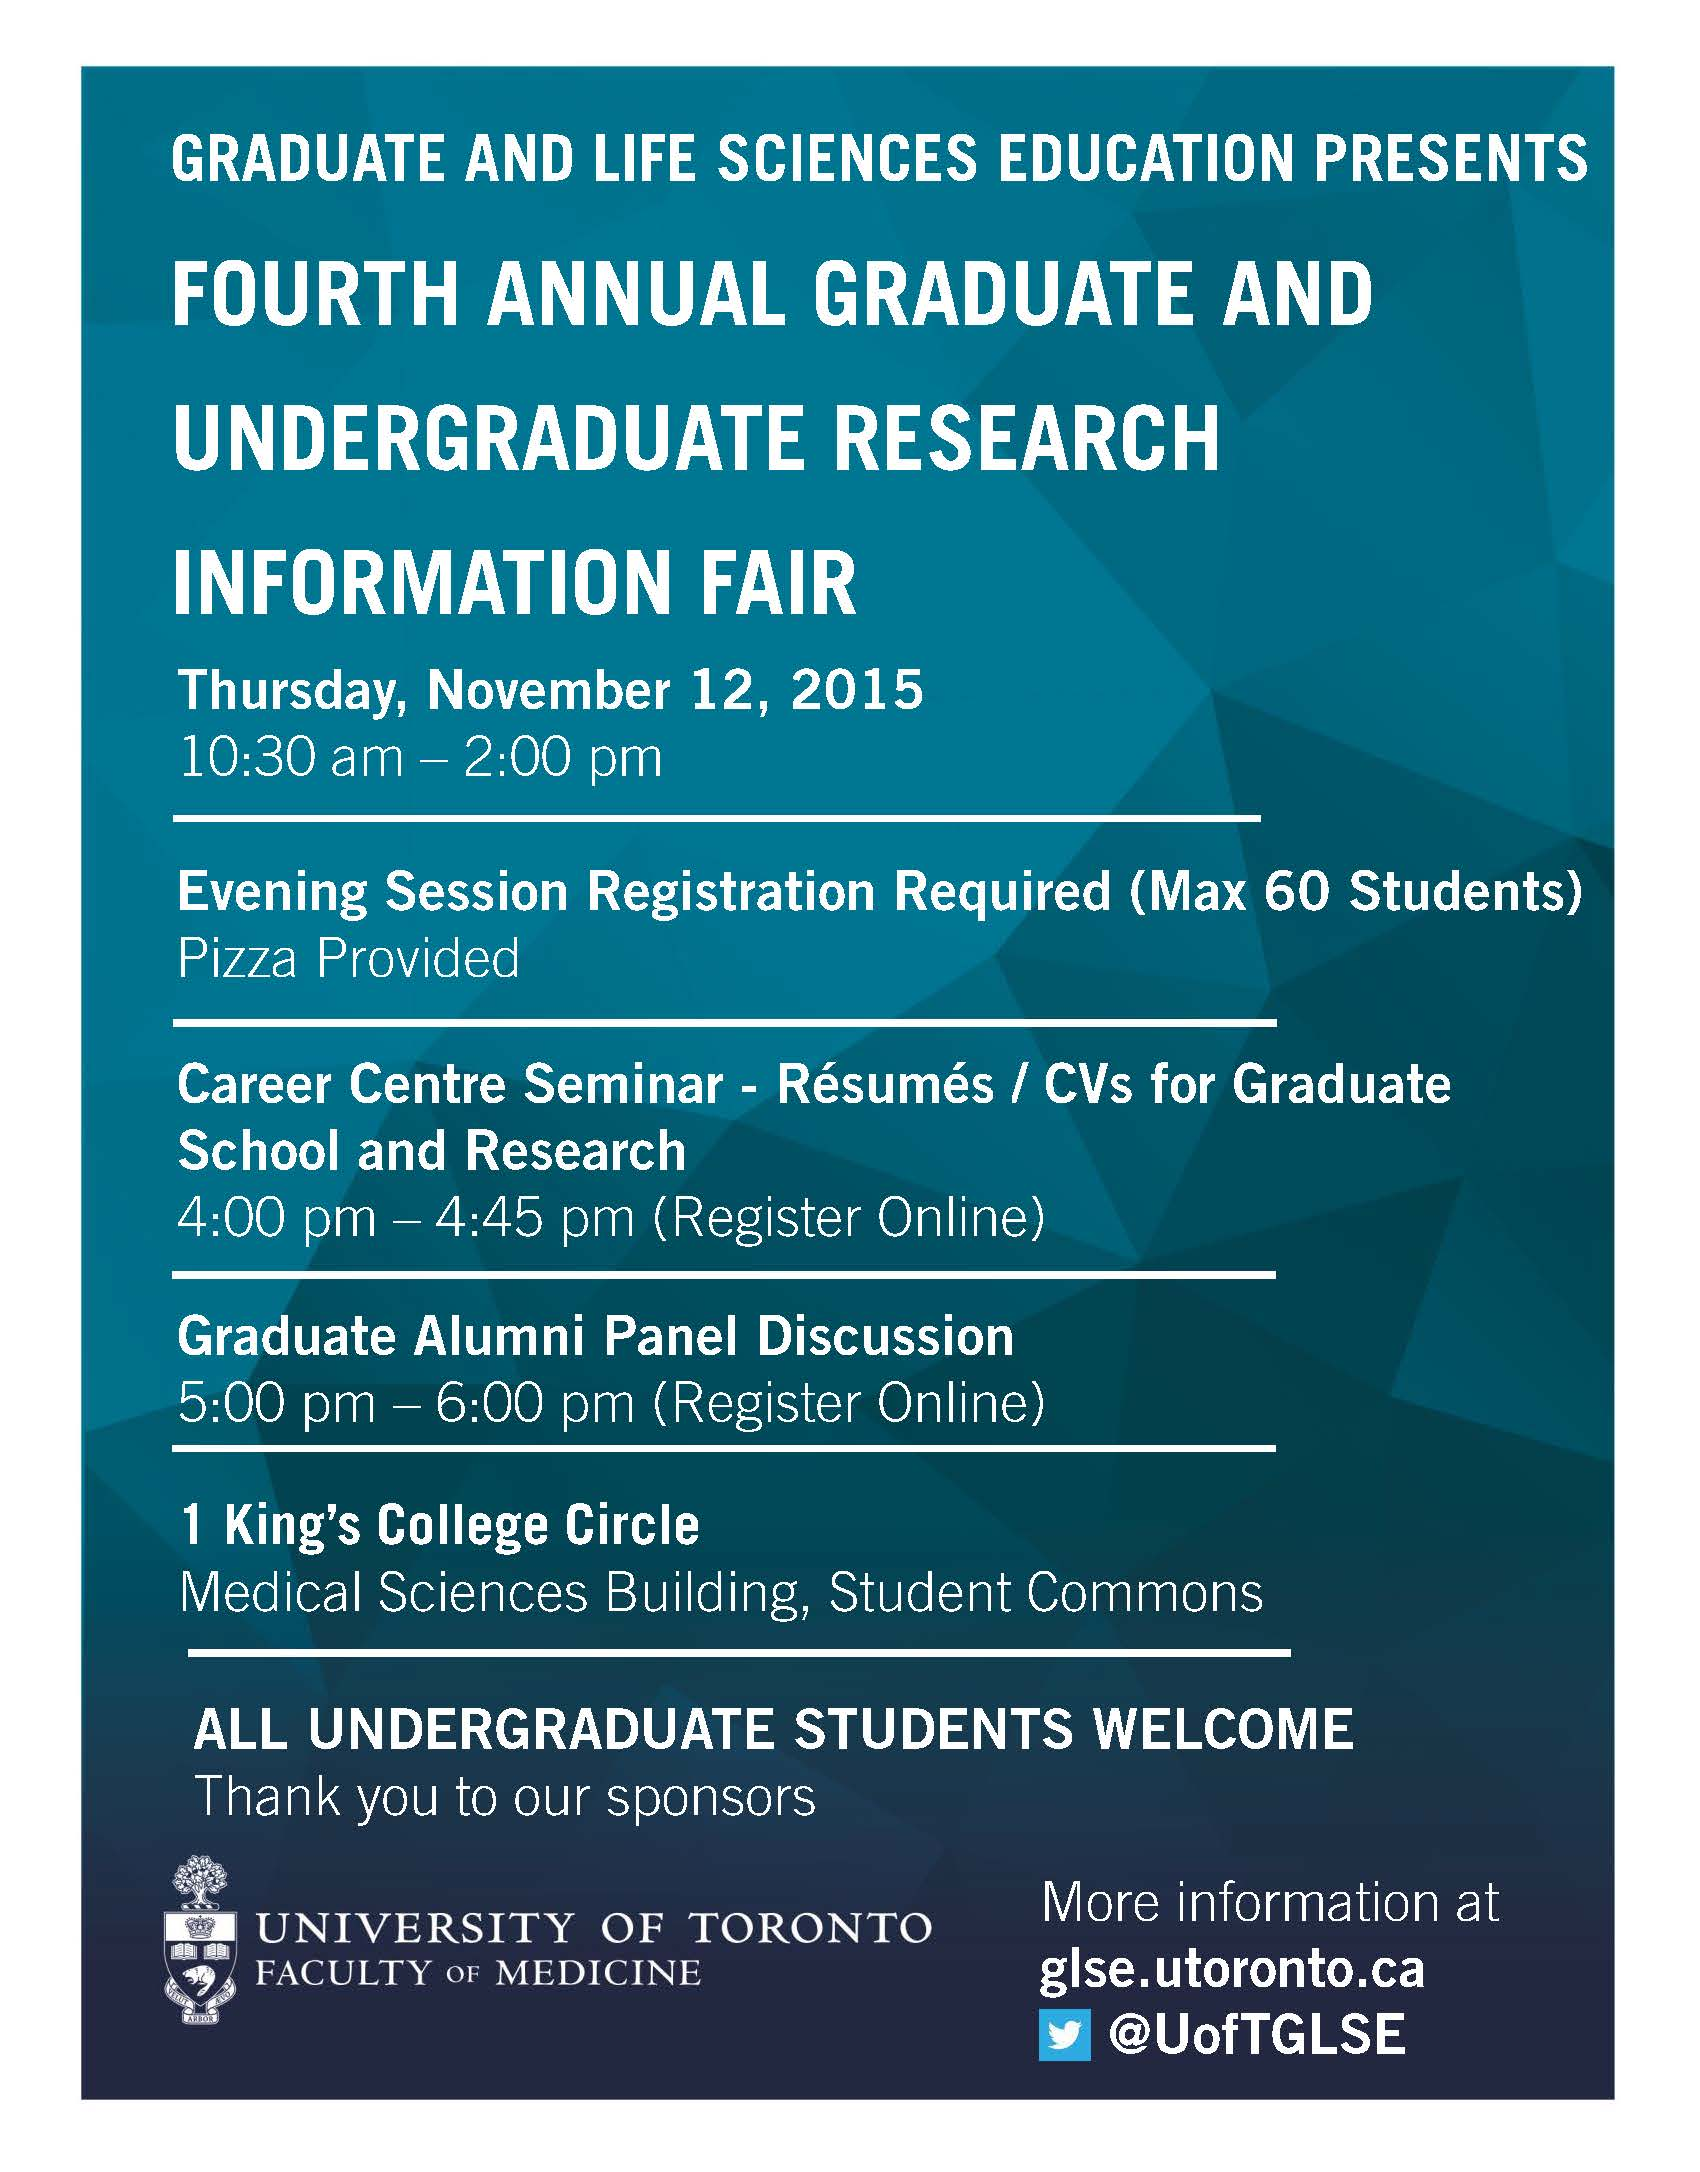 Fourth Annual Graduate and Undergraduate Research Information Fair